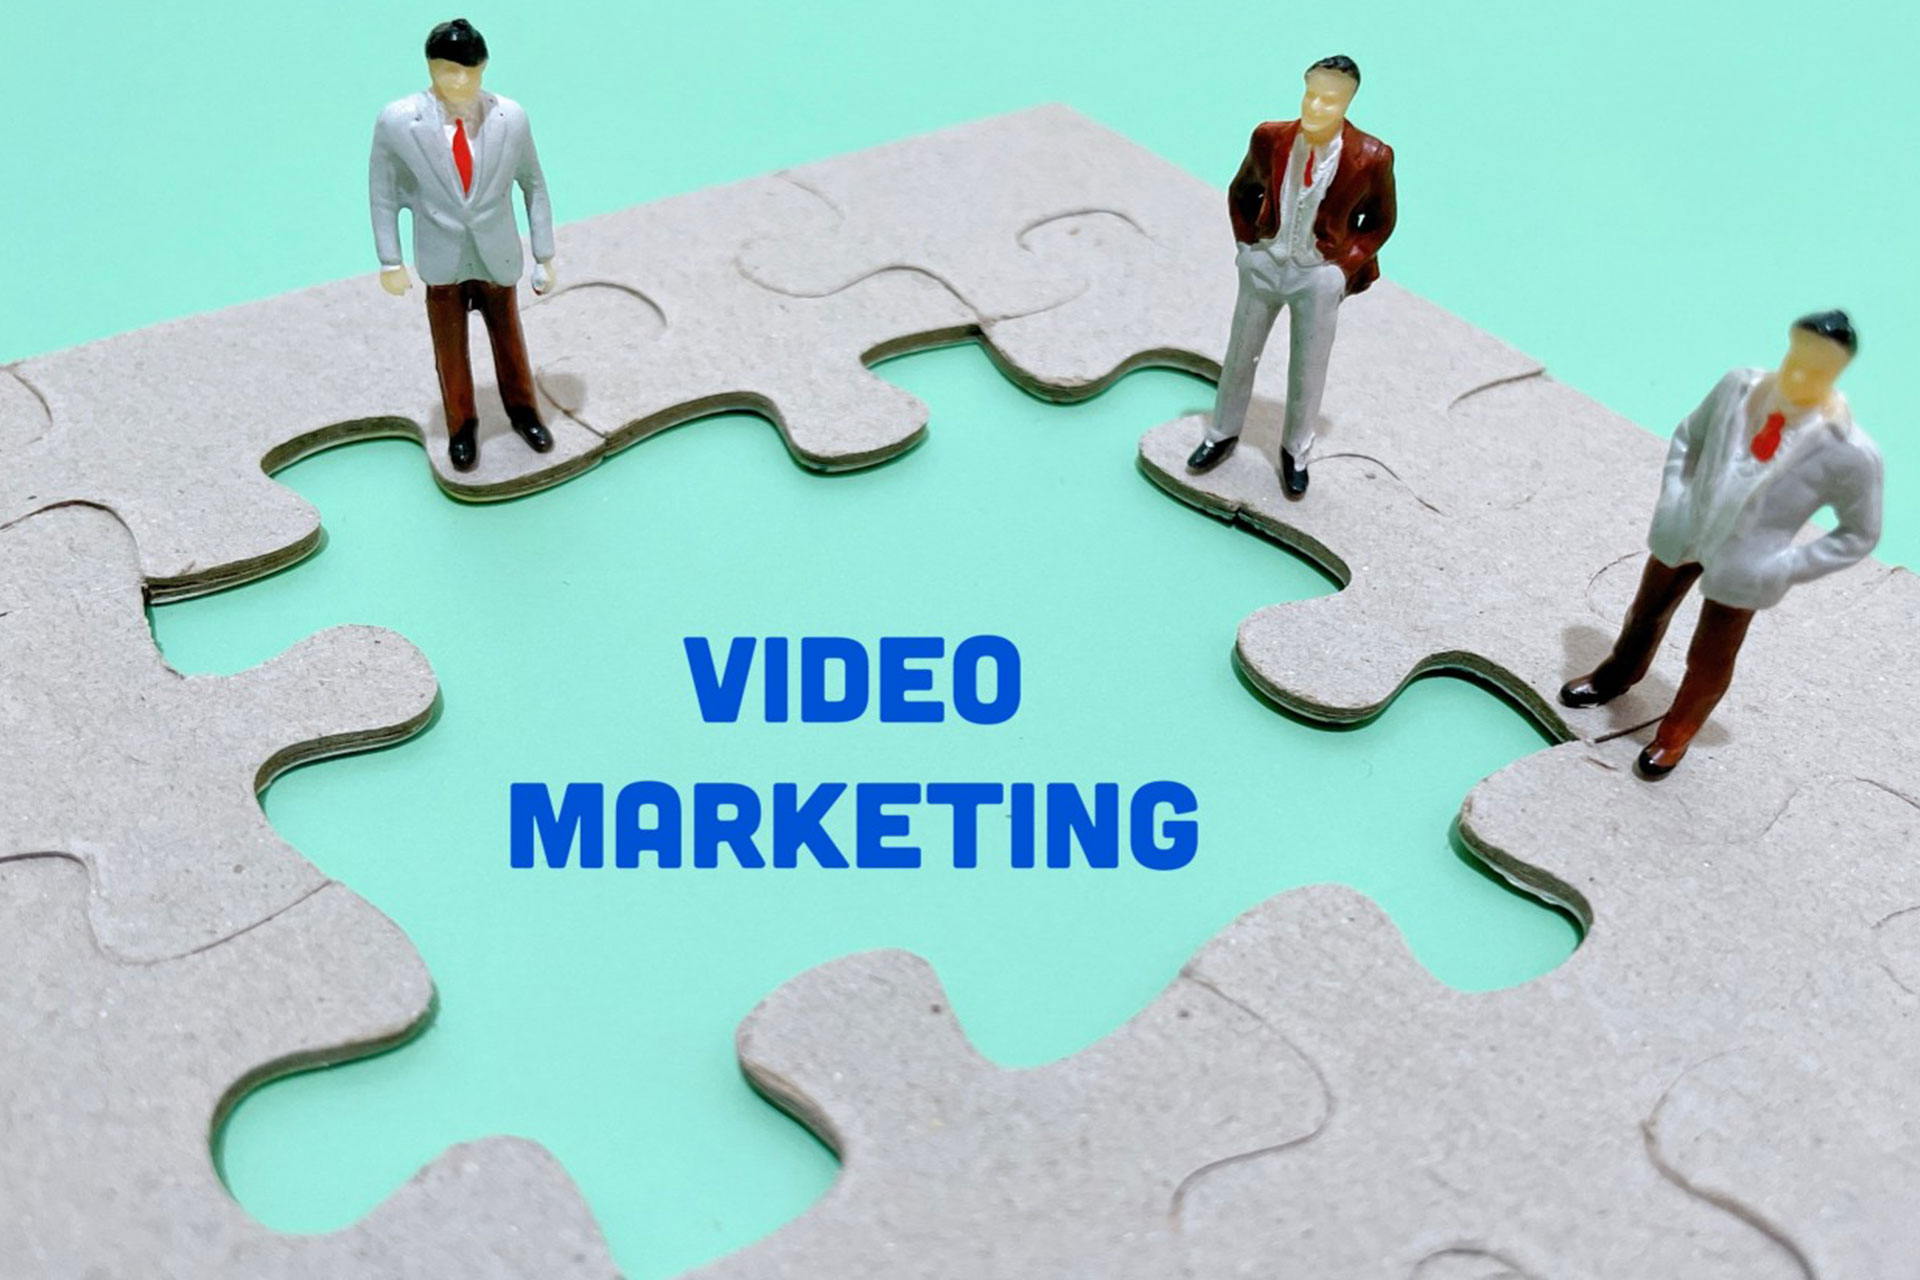 video marketing is an edge